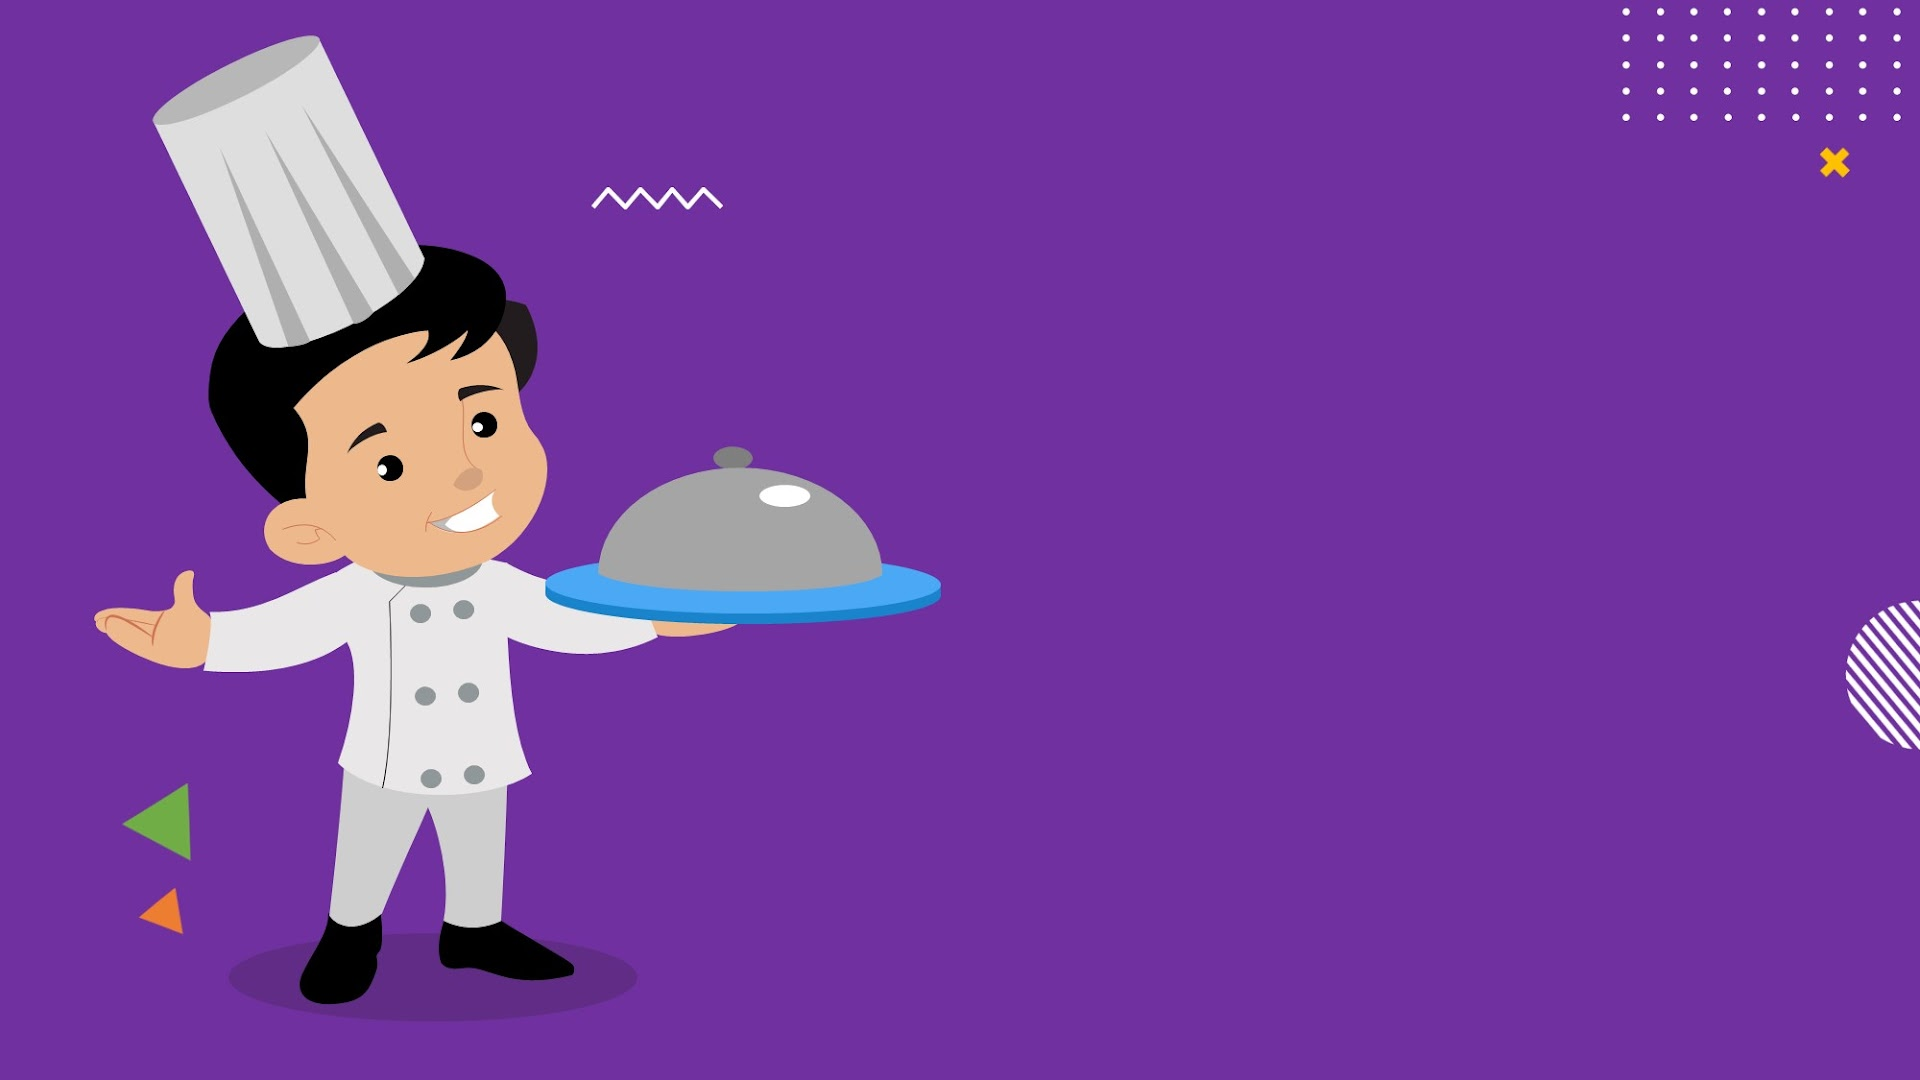 Cartoon Chef Standing on purple background  - free background for Presentations